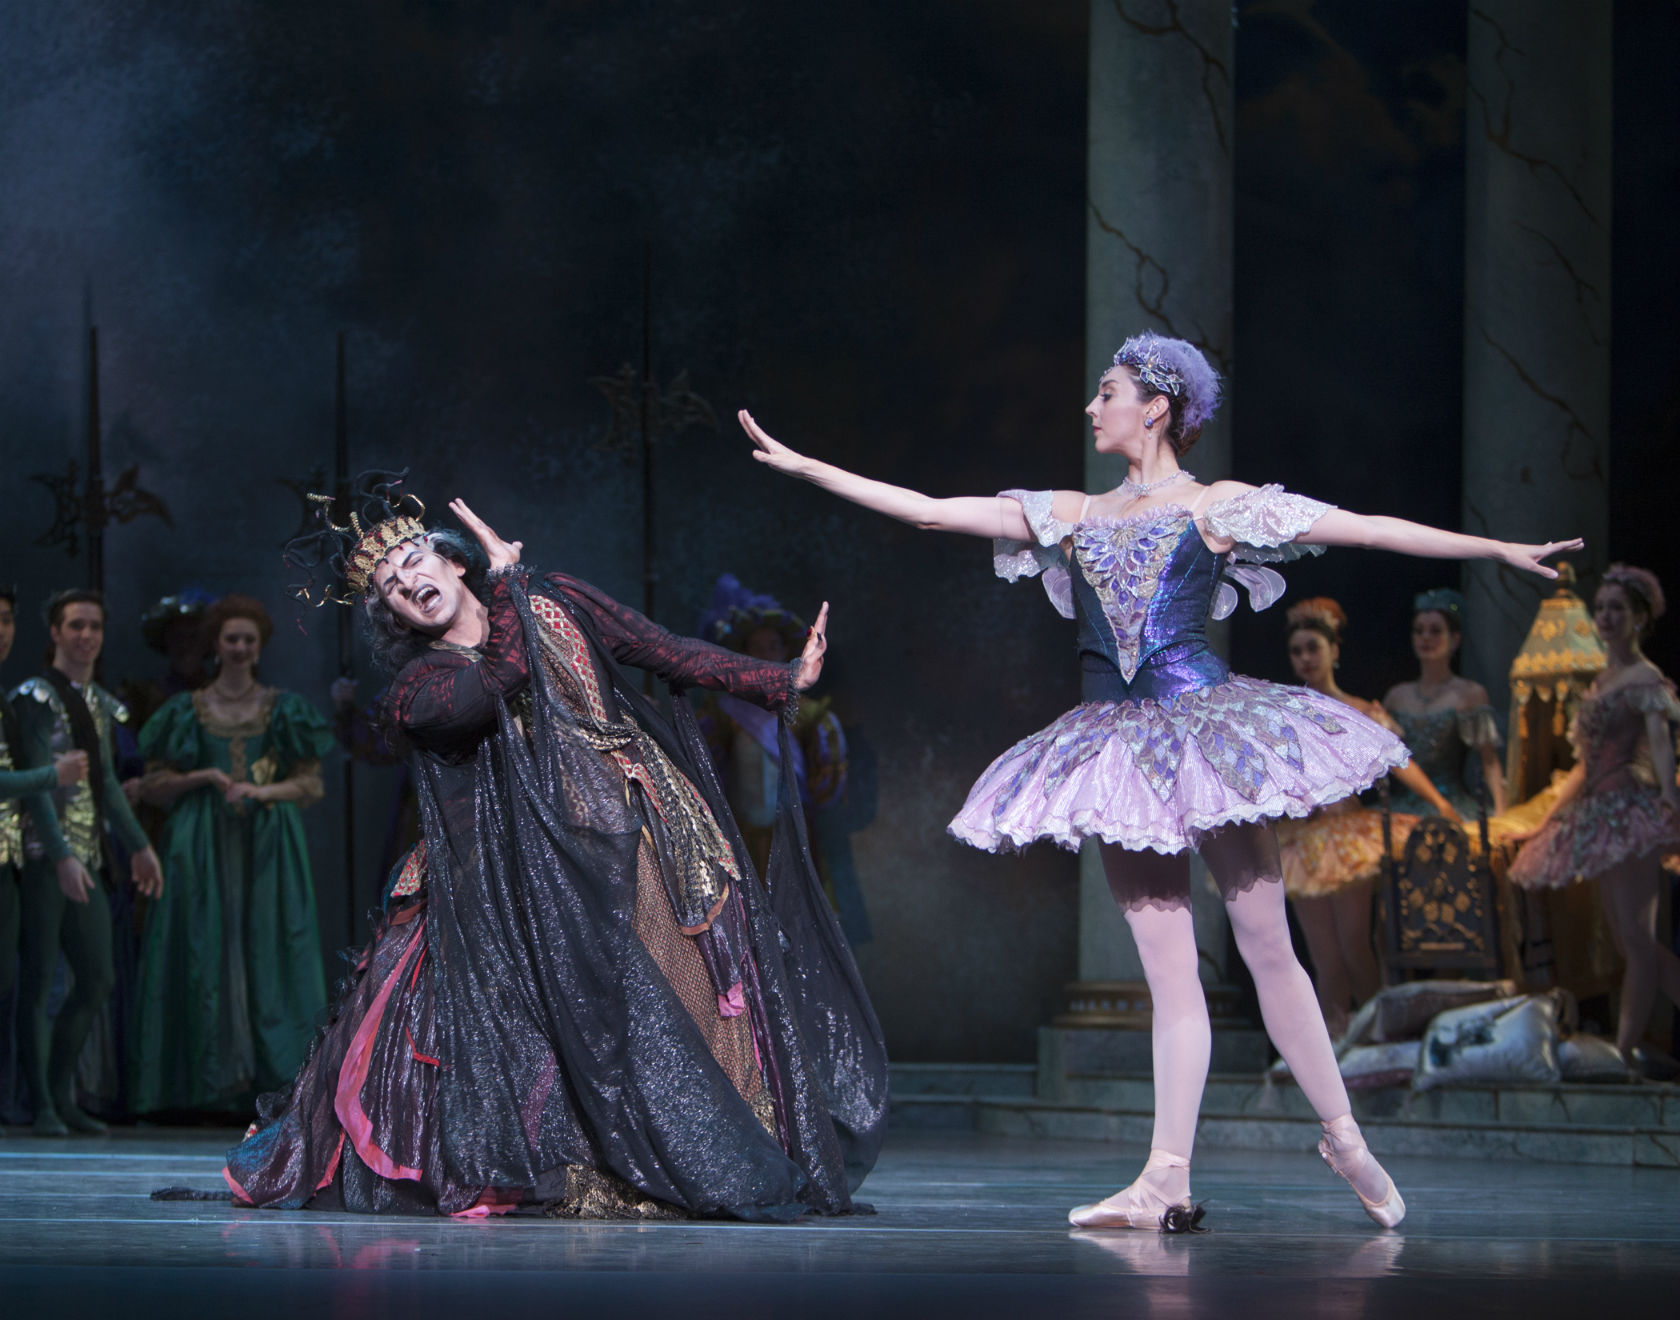 dbc8014b7e27 Pacific Northwest Ballet principal dancers Jonathan Porretta as the wicked  fairy Carabosse, and Laura Tisserand as the Lilac Fairy, in Ronald Hynd's  The ...